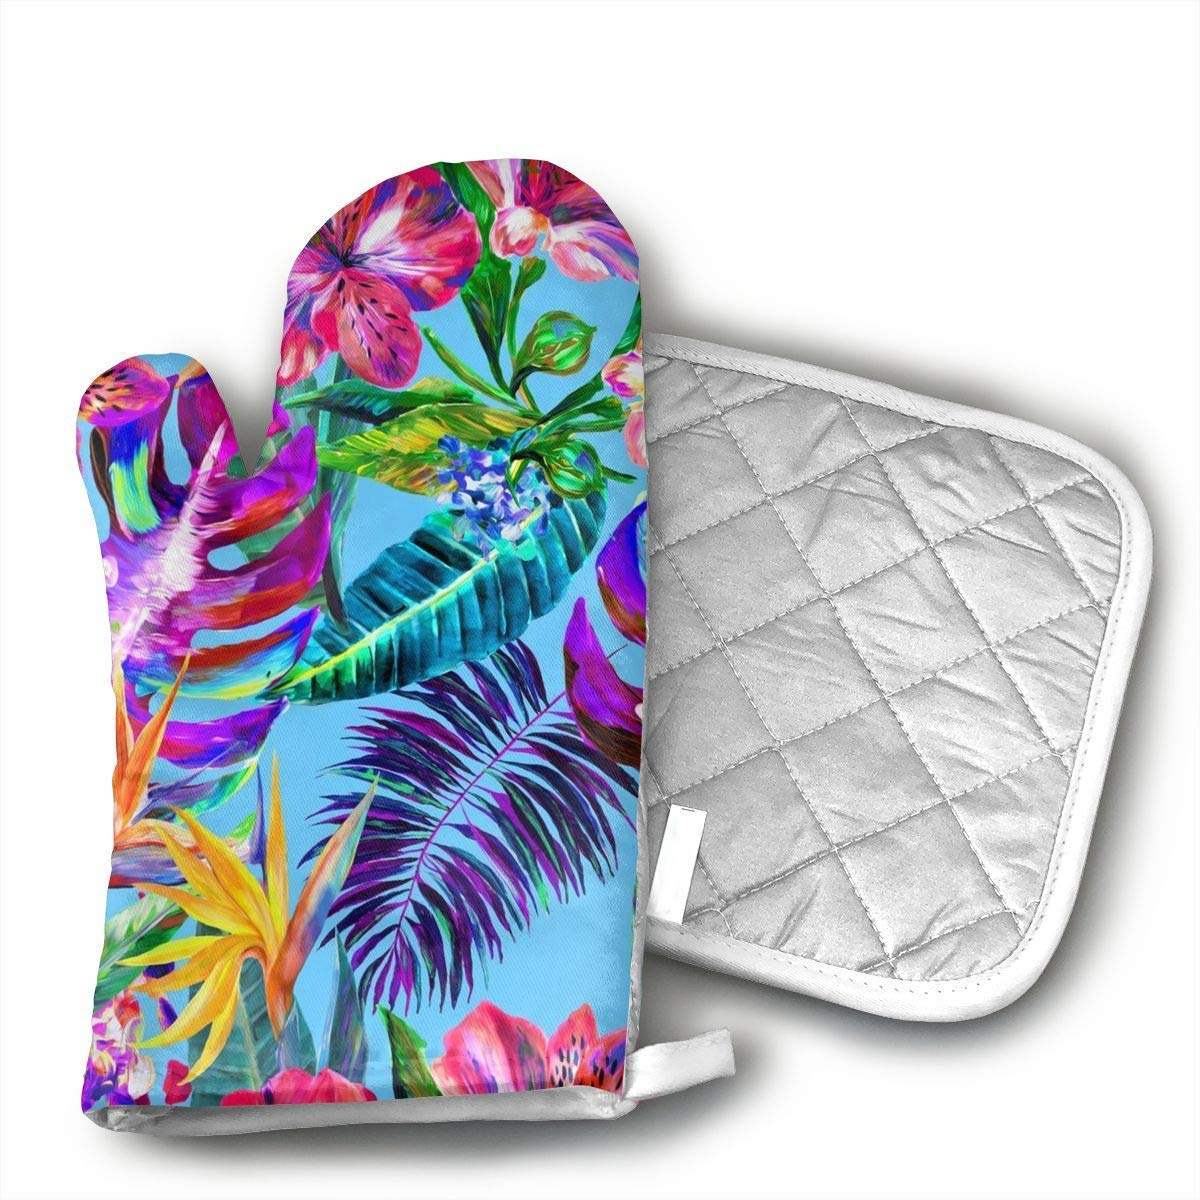 Tropical Flower Yourtablecloth Set of Oven Mitt and Pot Holder Or Oven Gloves-100% Cotton, High Heat Resistance, Superior Protection & Comfort¨CElegant Design